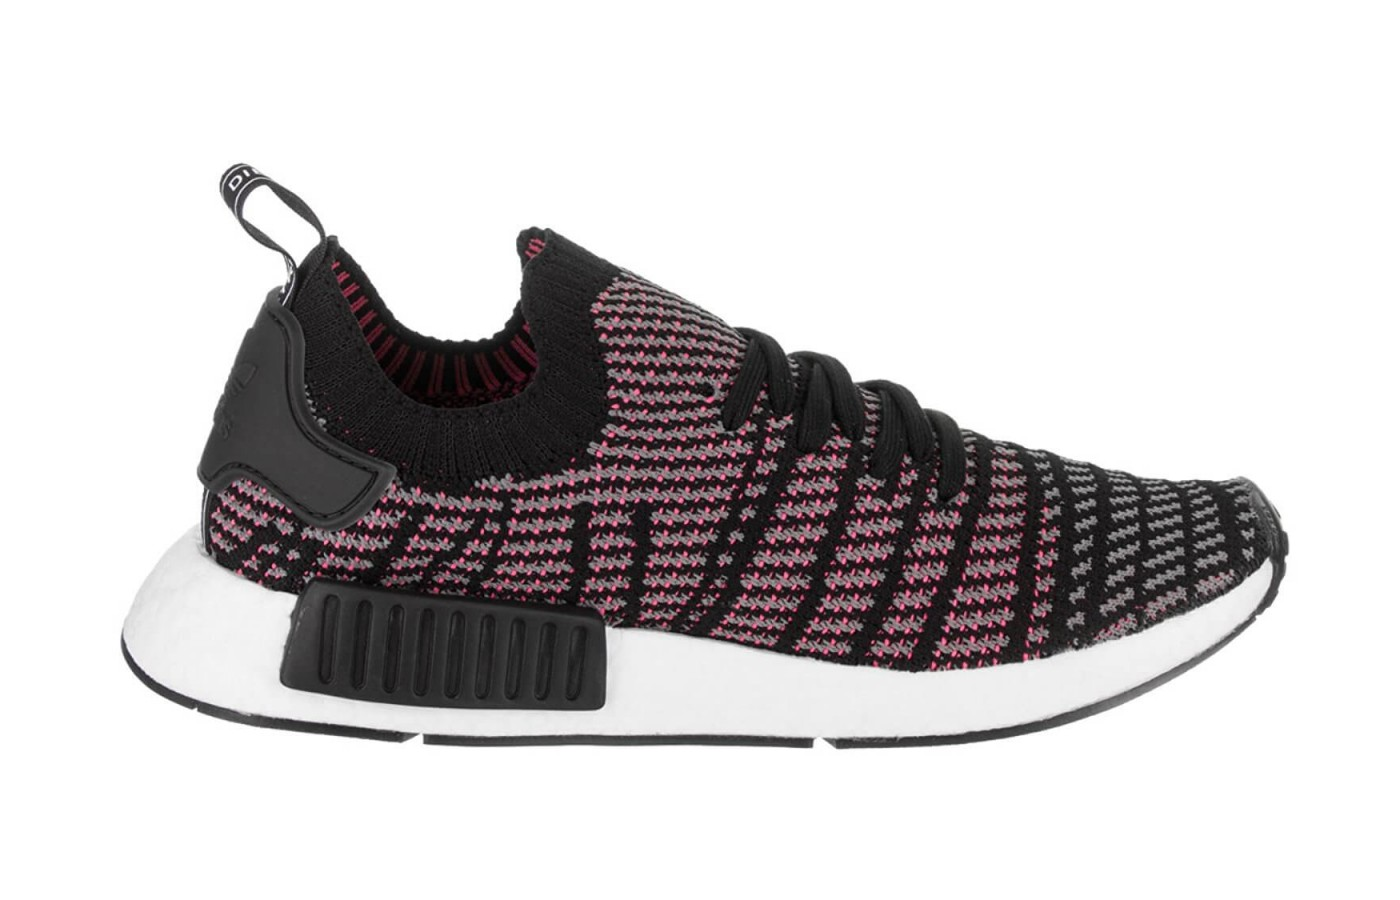 2f01510e0ac14 ... The Adidas NMD R1 Stlt Primeknit features a Boost midsole ...